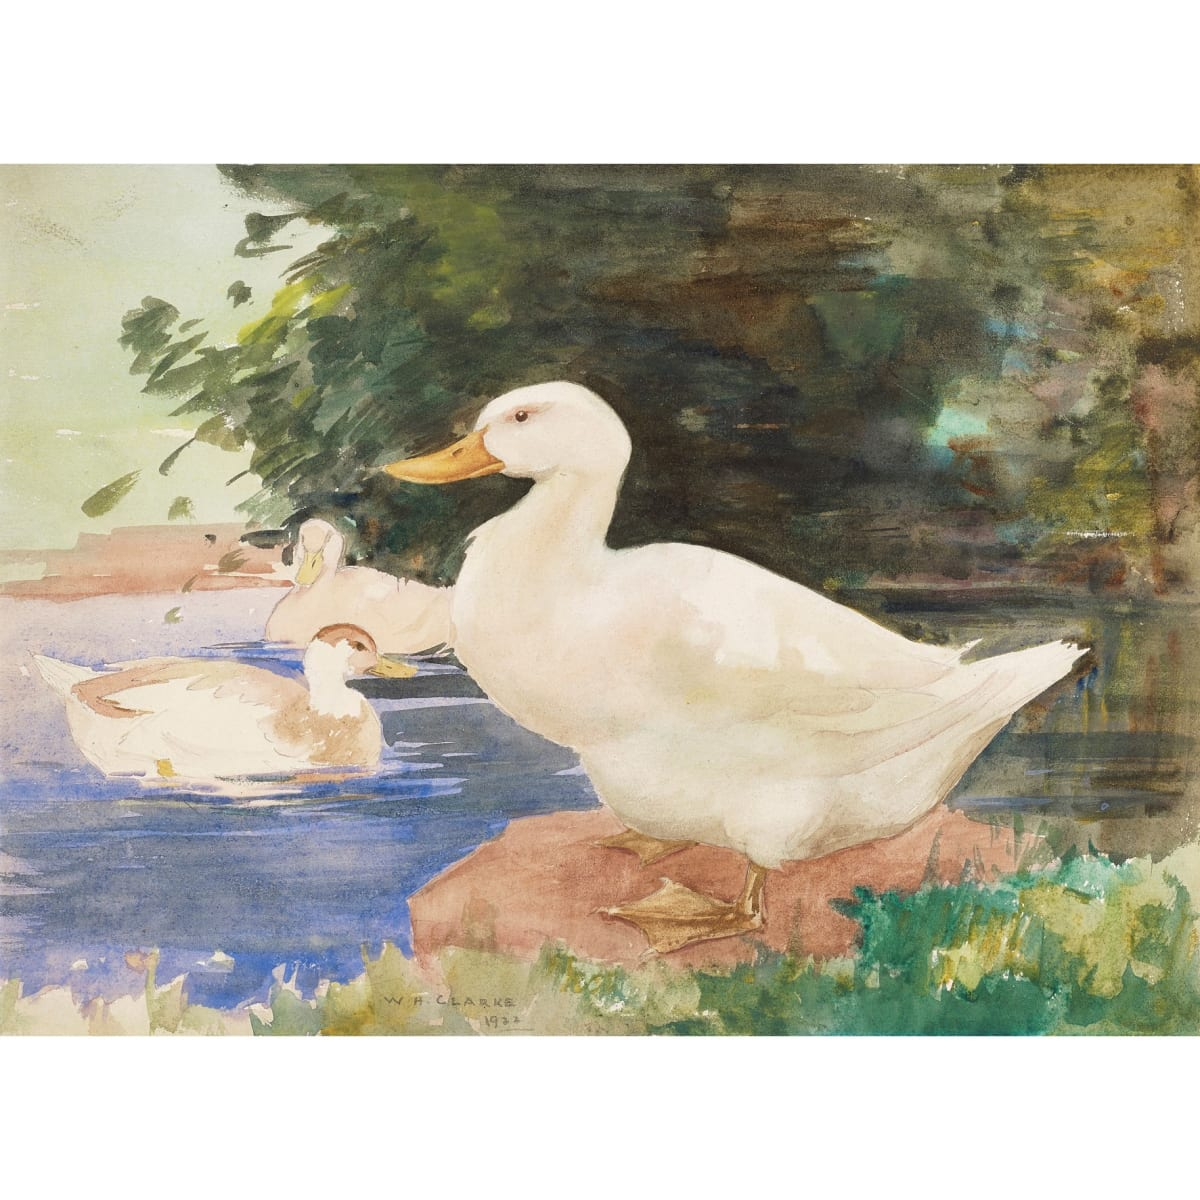 William Hanna Clarke The White Drake, 1922 signed and dated 1922 watercolour 10 3/4 x 14 3/4 inches